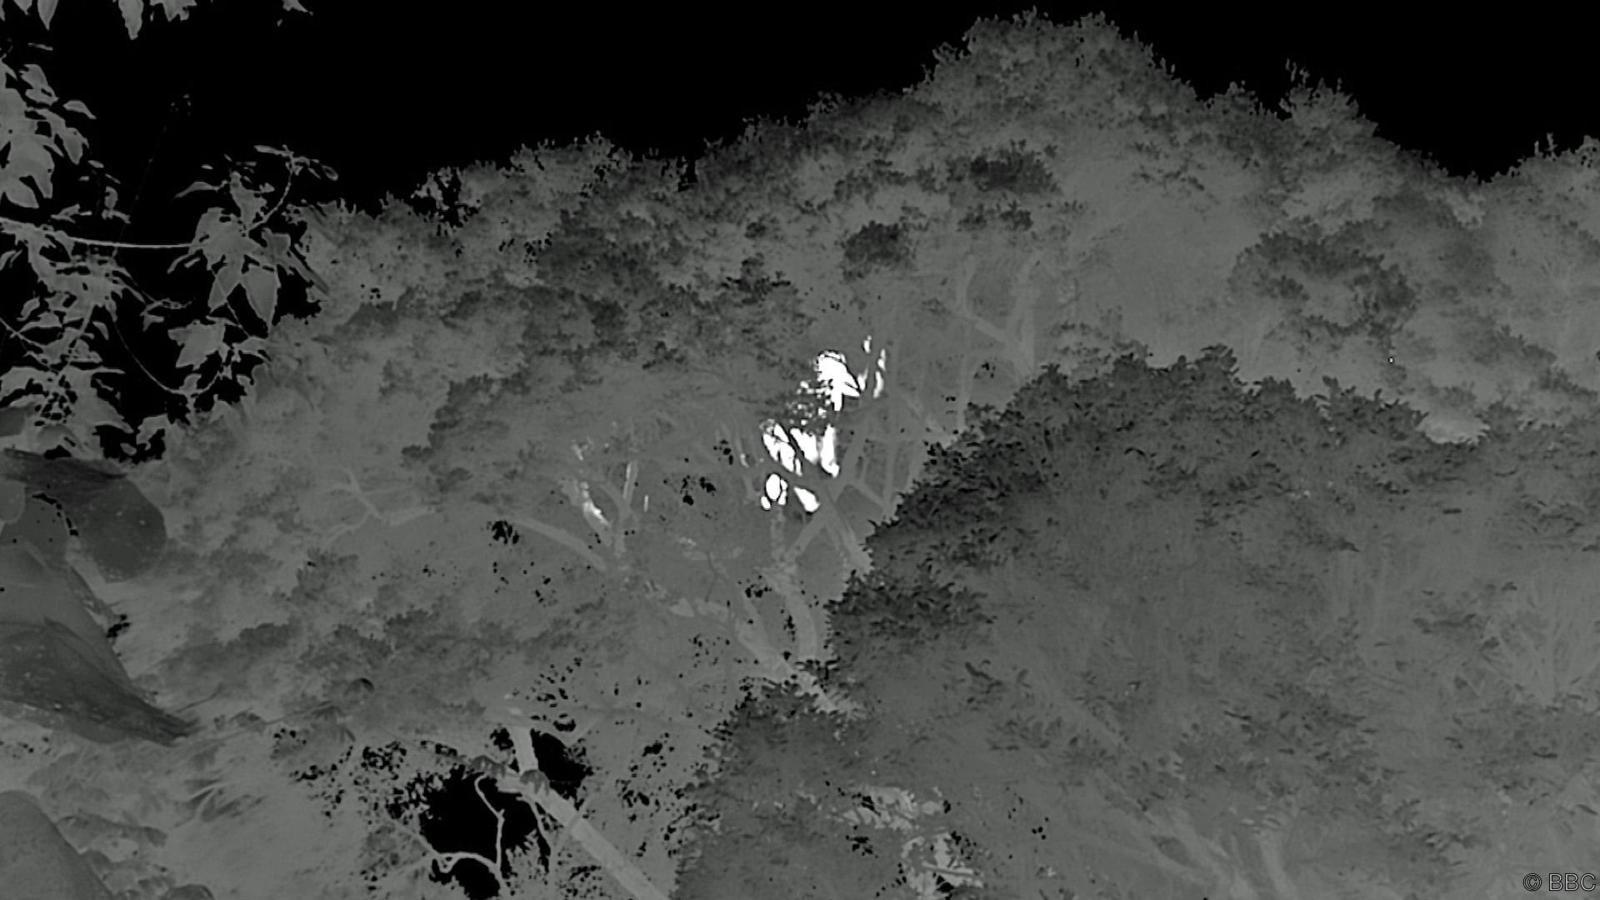 Eastern lowland gorillas have now been filmed on thermal cam at night building nests to sleep in up to 45 meters above ground.